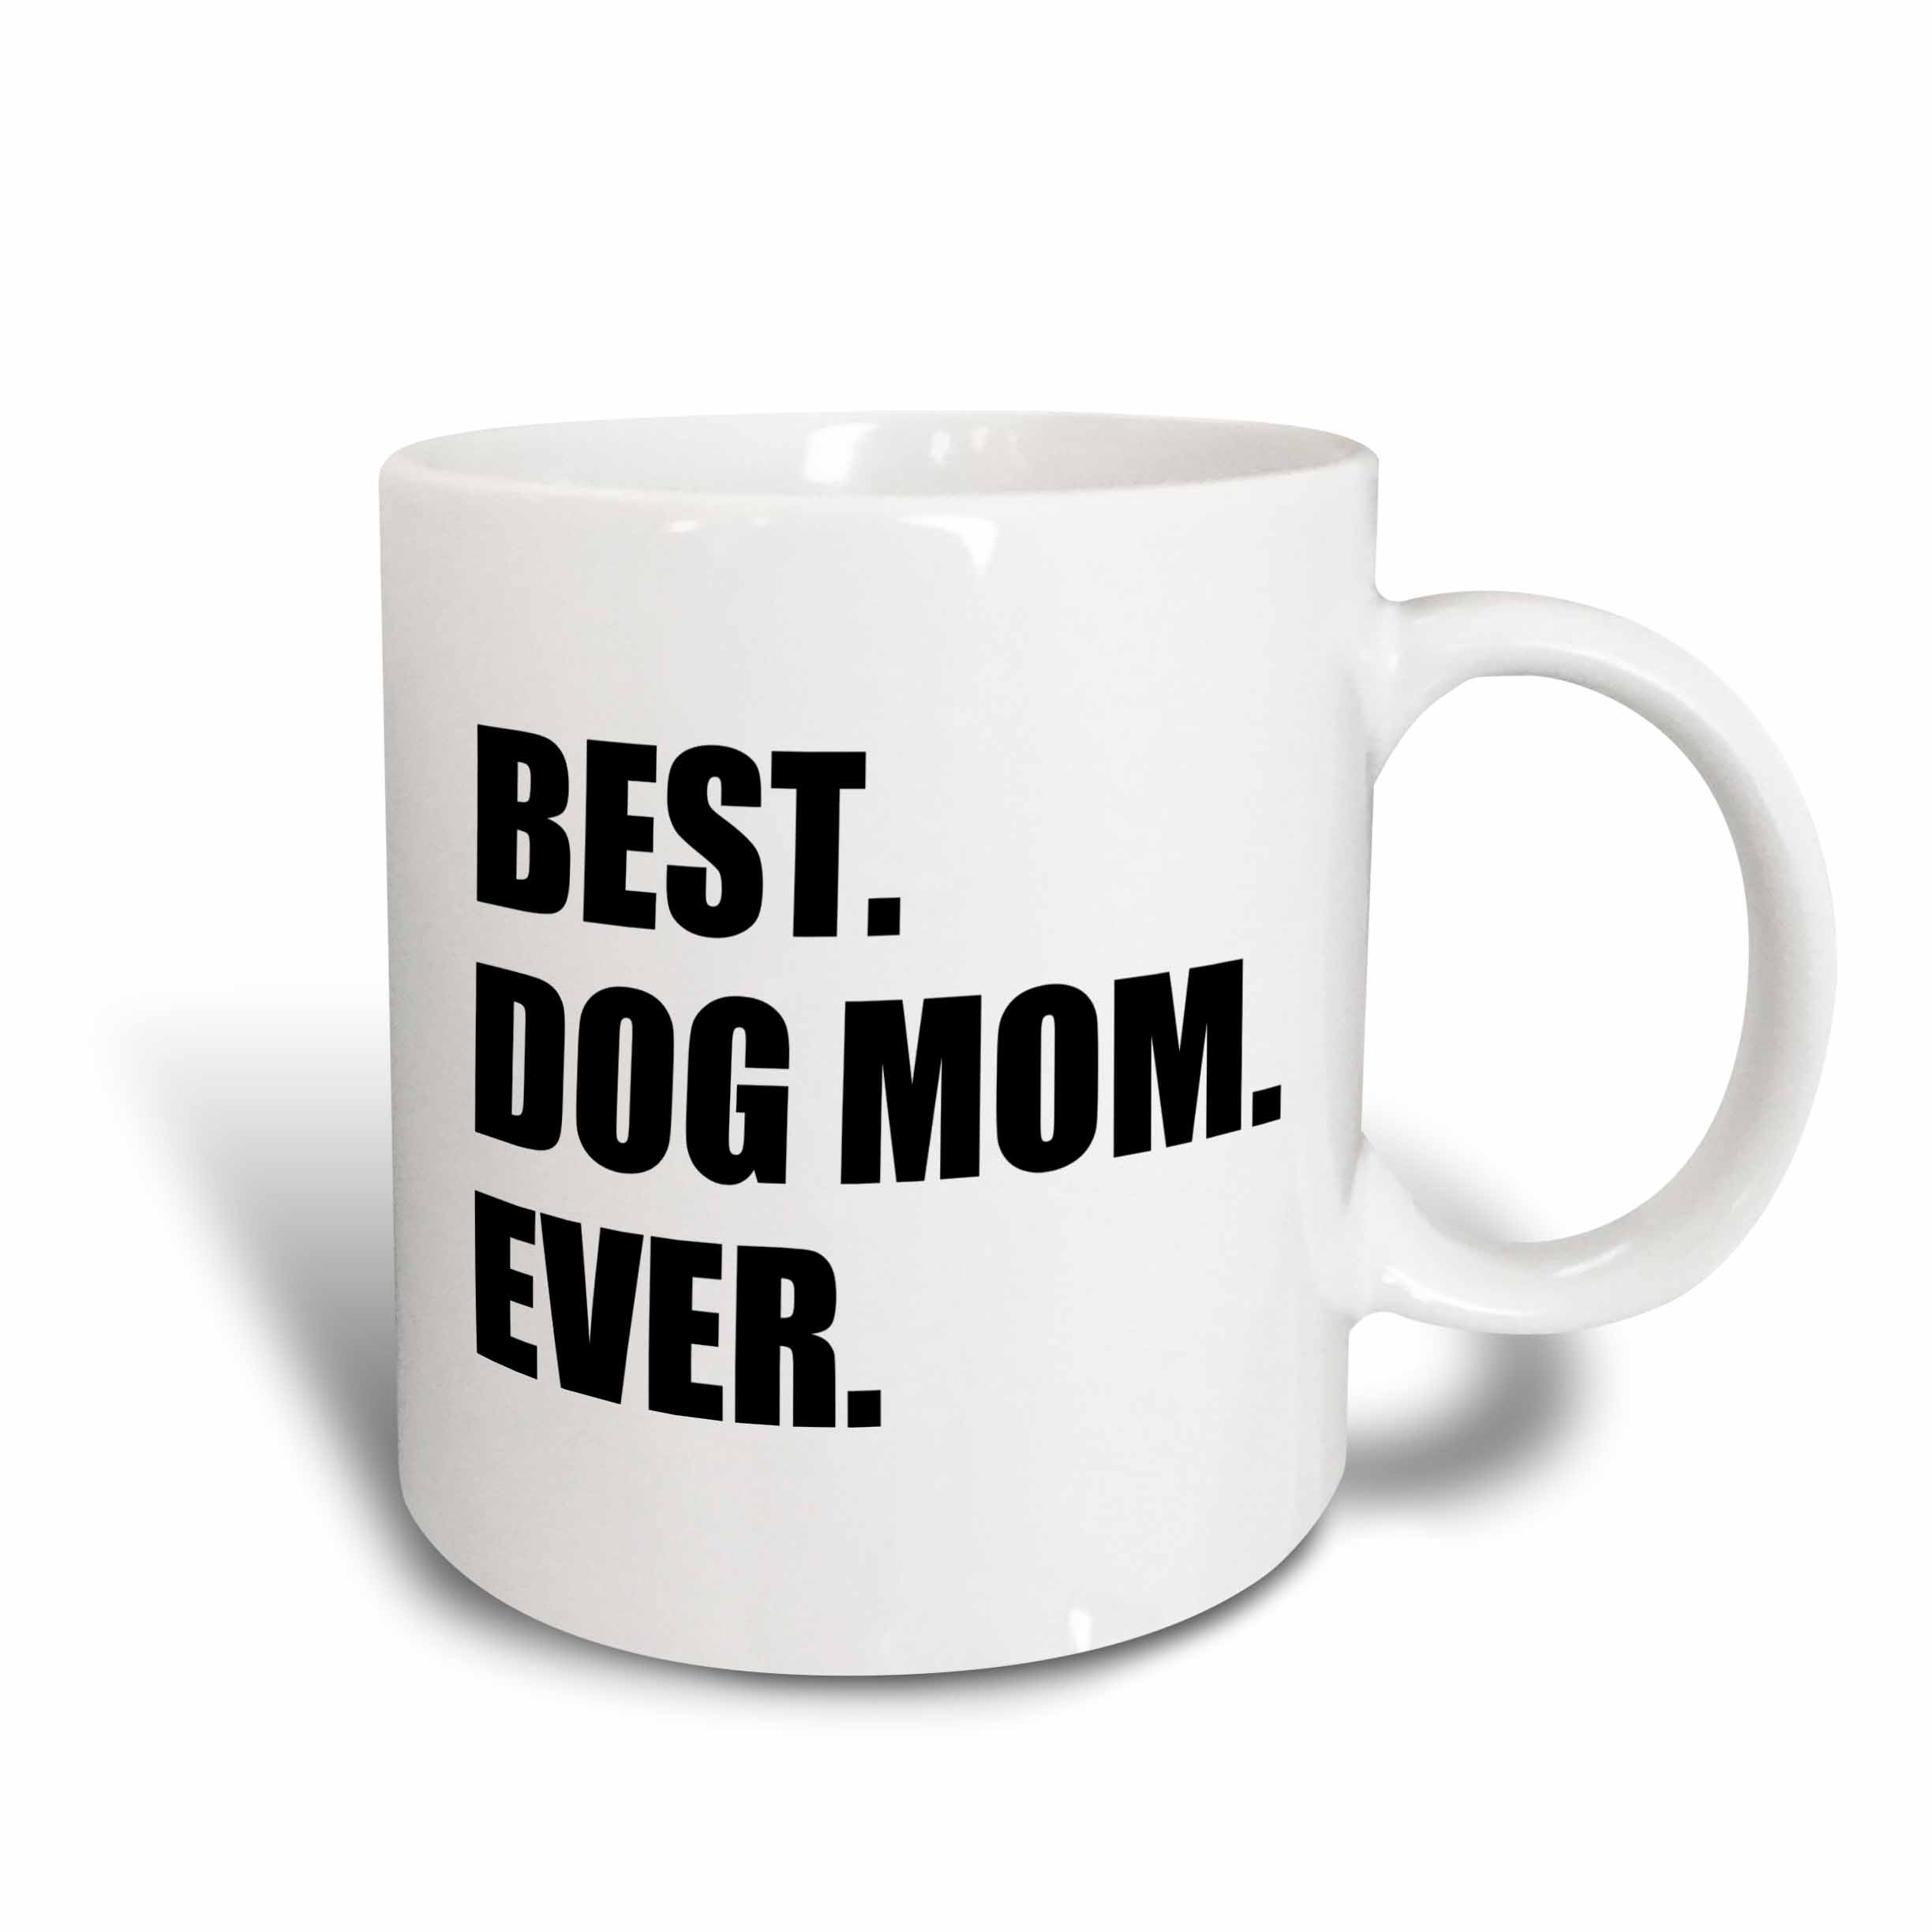 3dRose Best Dog Mom Ever fun pet owner gifts for her animal lover text, Ceramic Mug, 11-ounce by 3dRose